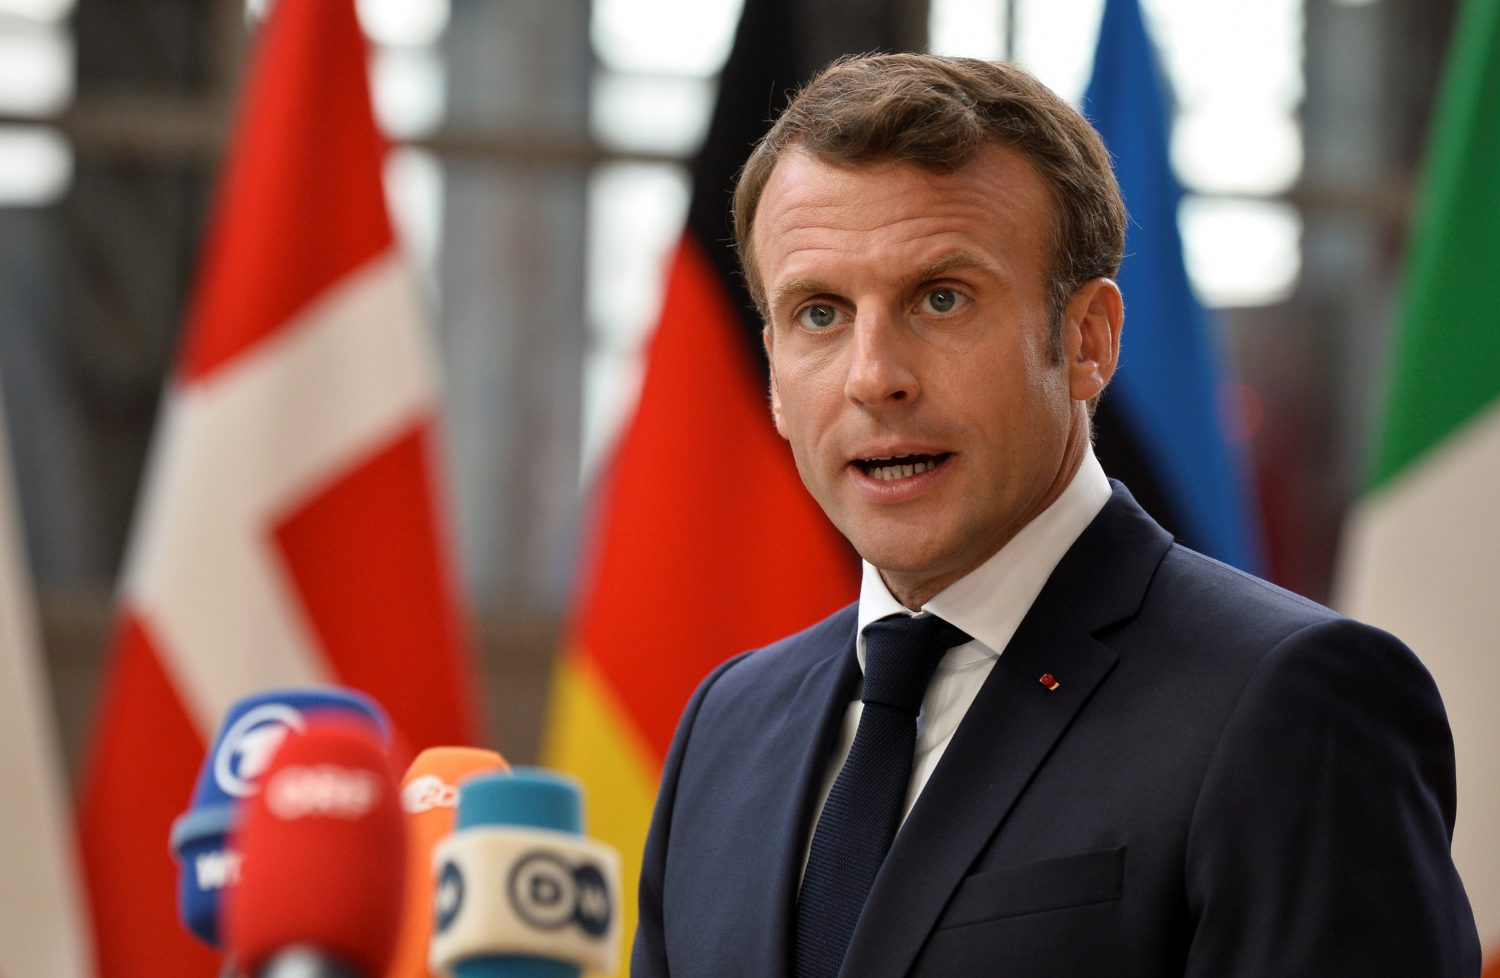 FILE PHOTO - French President Emmanuel Macron speaks to the media ahead of a European Union leaders summit that aims to select candidates for top EU institution jobs, in Brussels, Belgium June 30, 2019. REUTERS/Johanna Geron